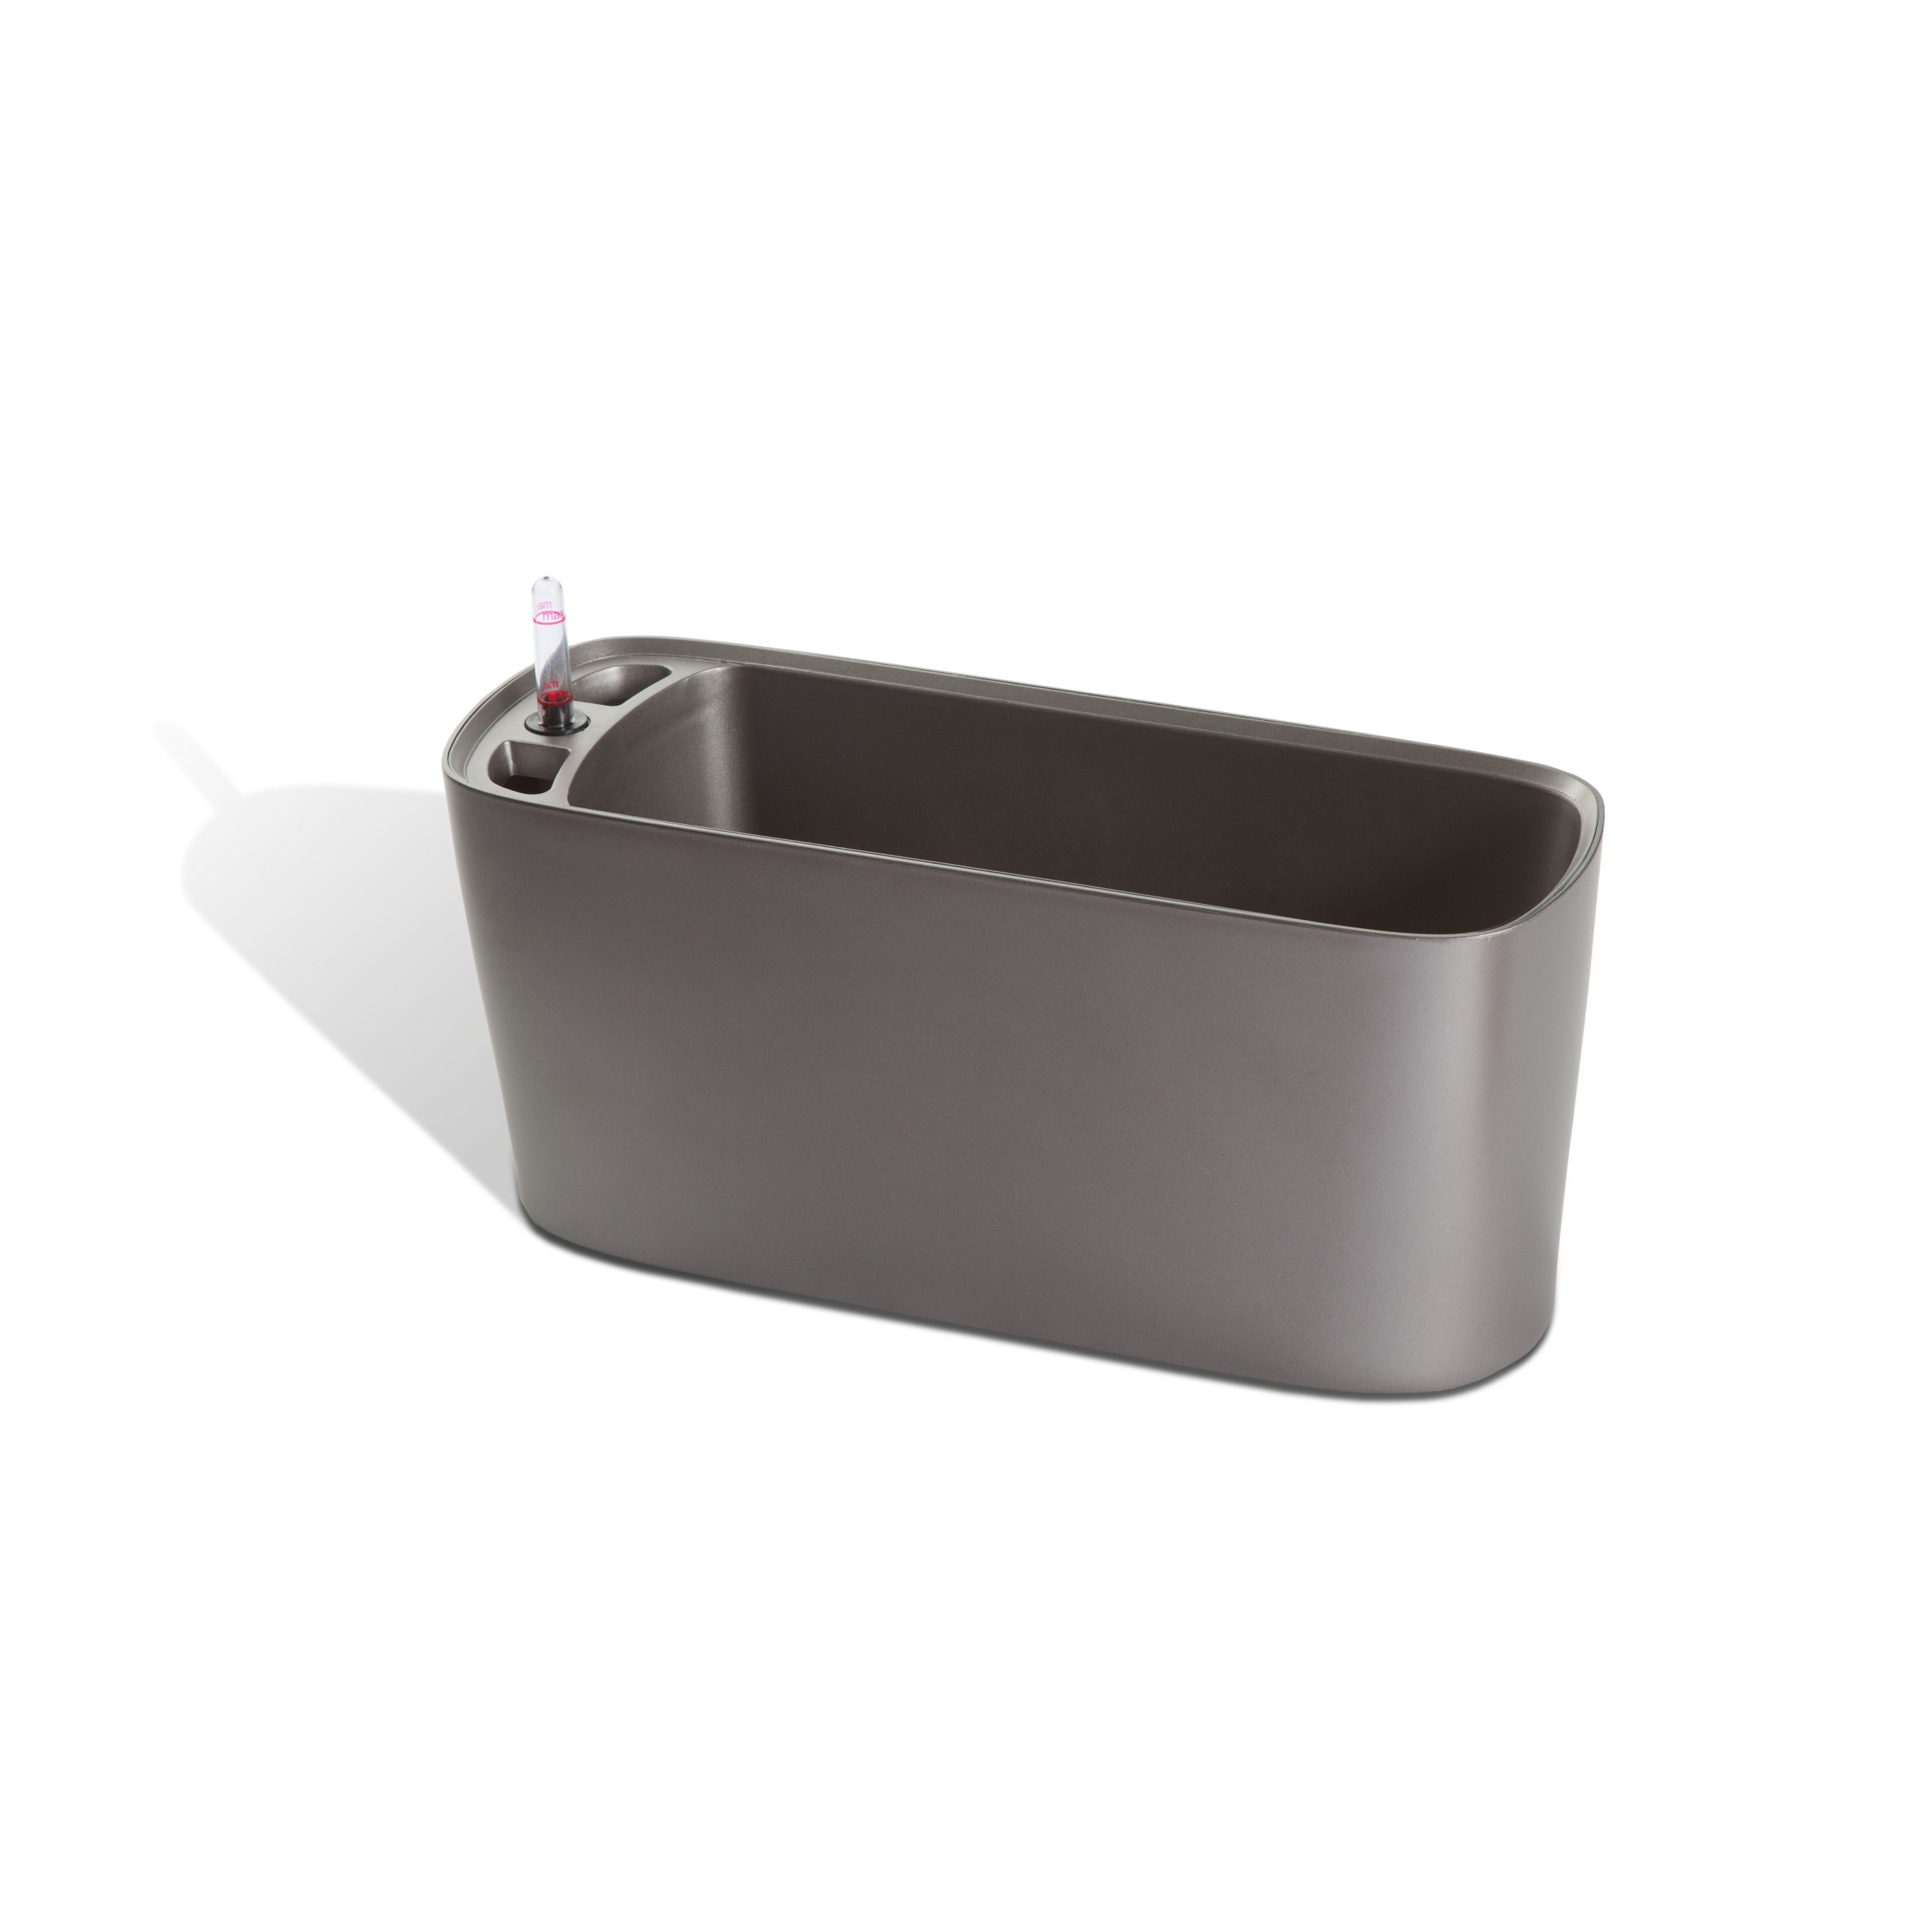 Algreen 15205 Self Watering Modena Windowsill Planter and Herb Garden, Matte Silver